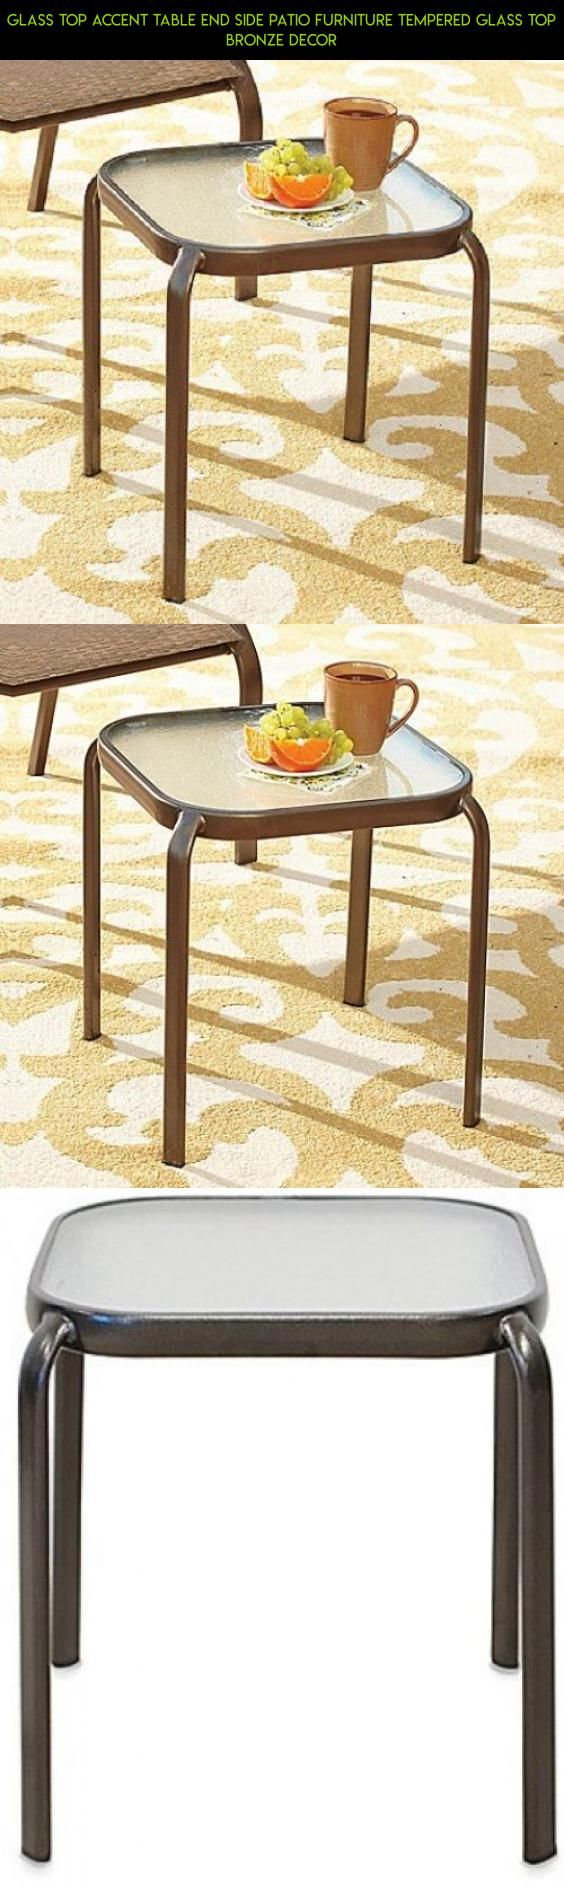 48 outdoor glass table top replacement - Glass Top Accent Table End Side Patio Furniture Tempered Glass Top Bronze Decor Kit